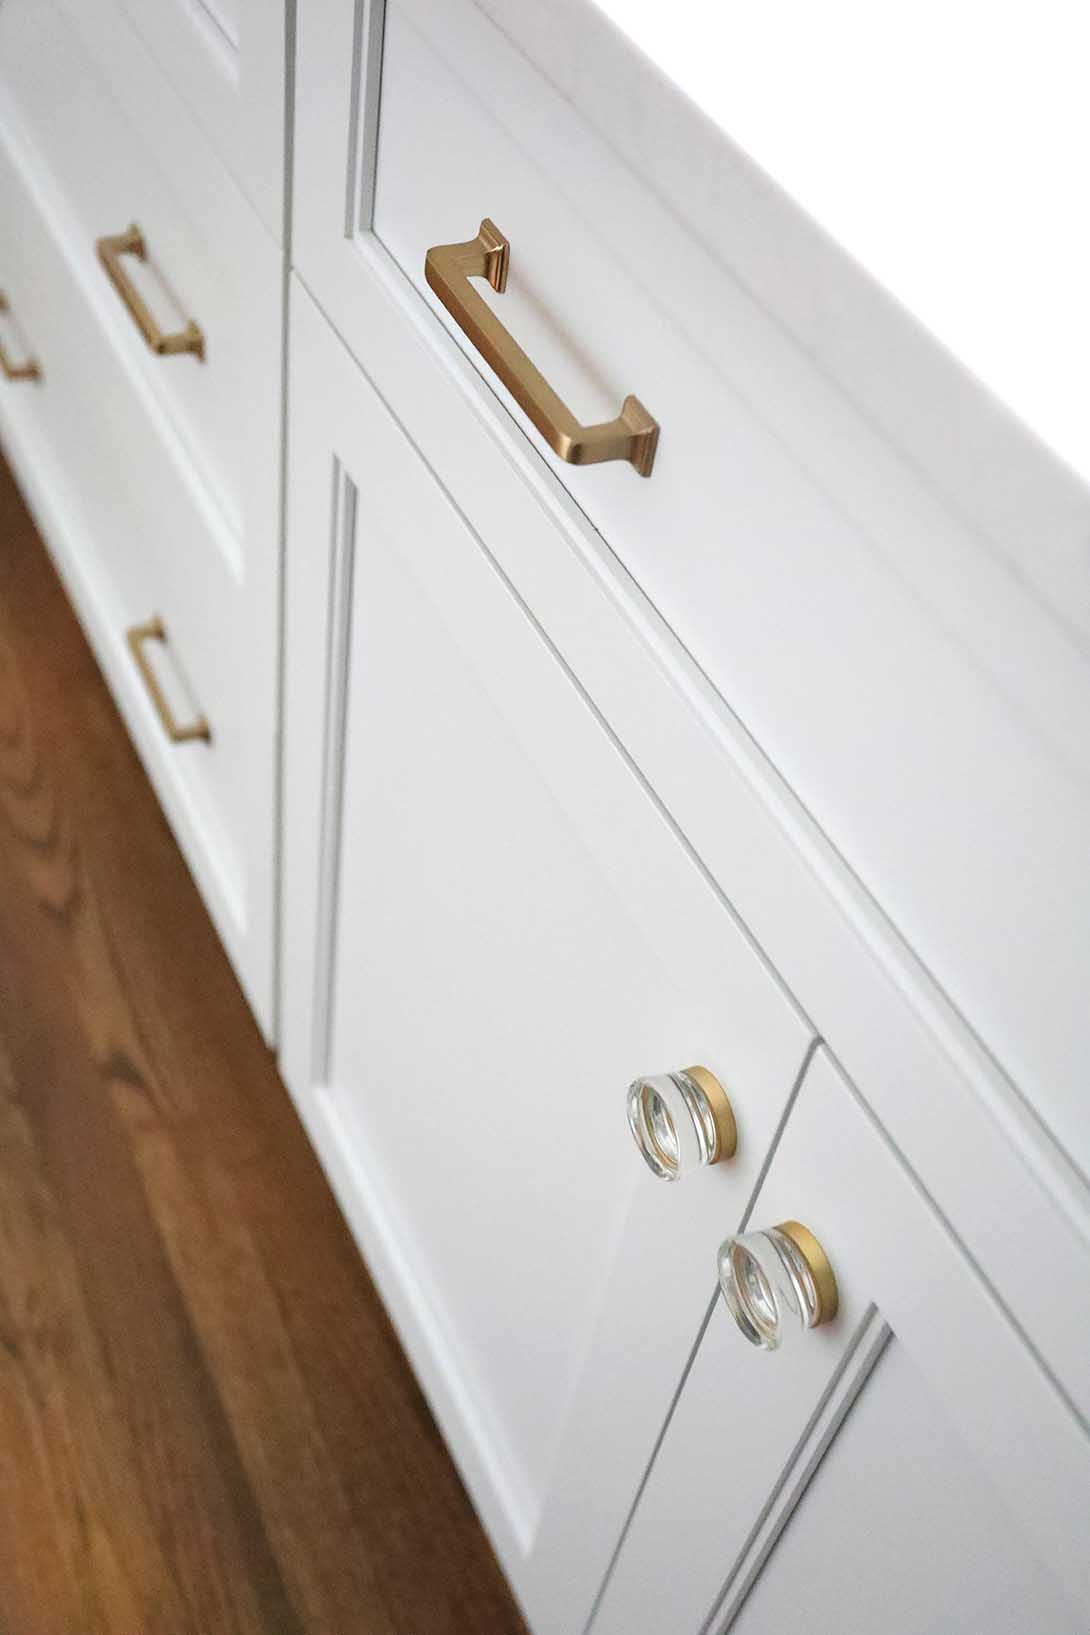 Cabinet Hardware Tips For Choosing Kitchen Cabinet Knobs And Handles Normandy Remodeling